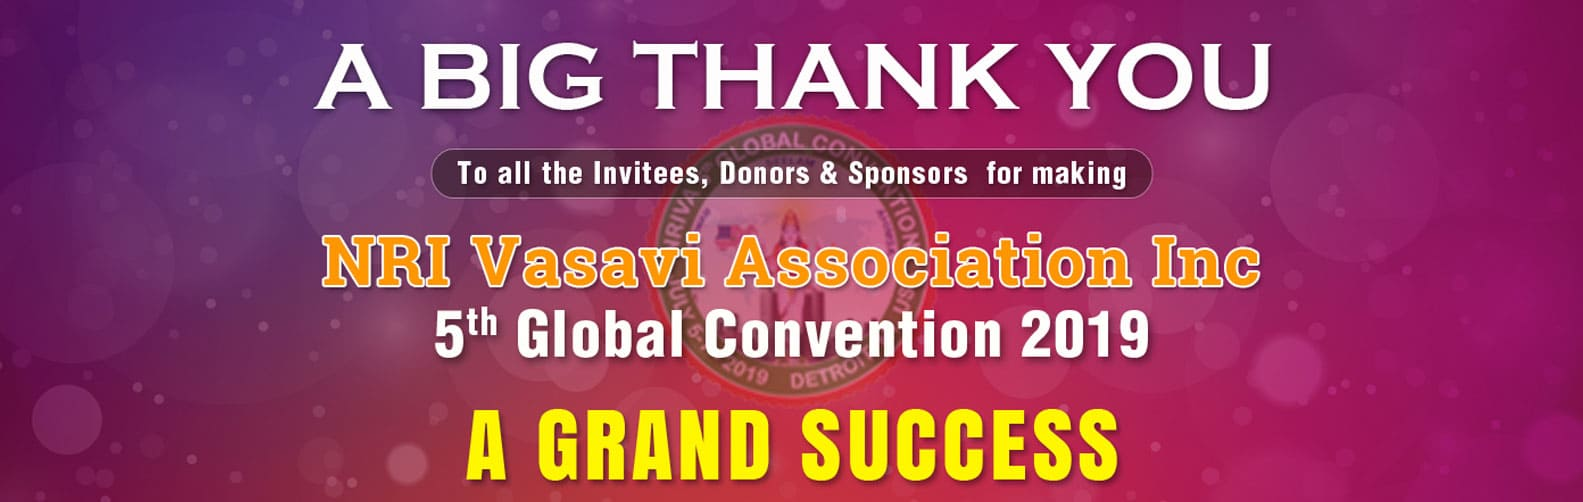 NRIVA Convention Grand Success